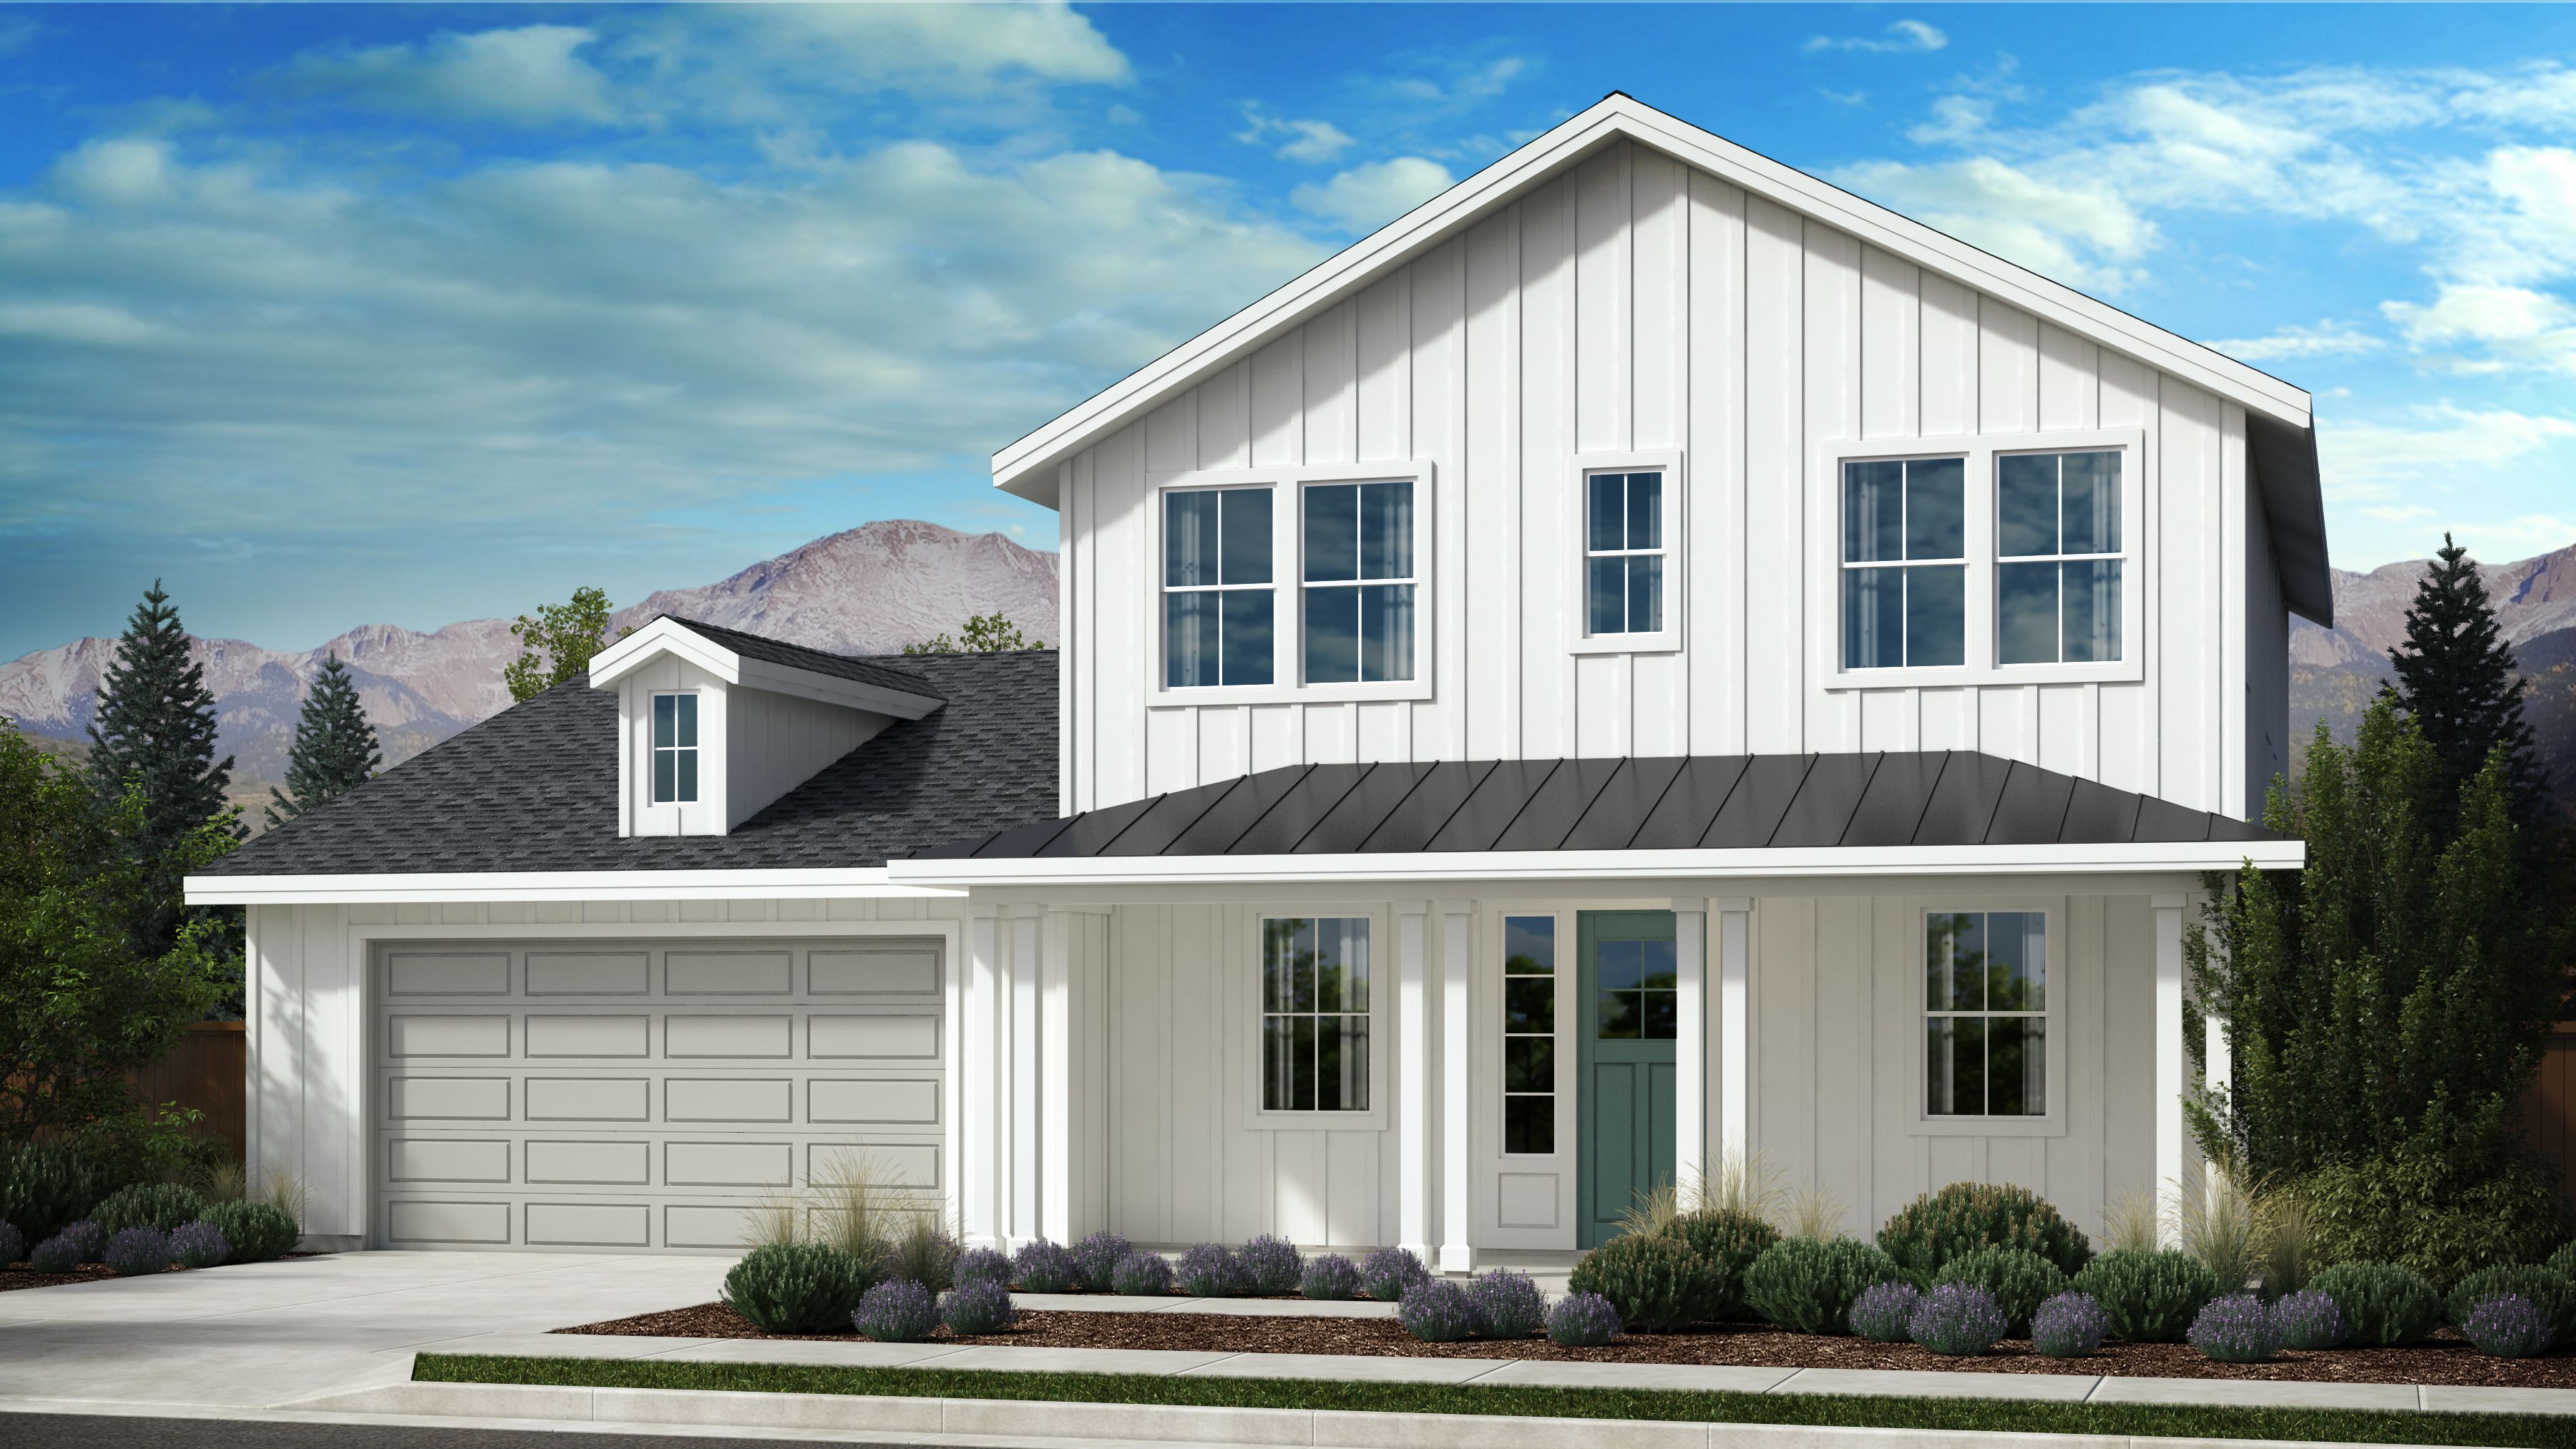 Exterior featured in the Appaloosa Series Plan 3 By Bates Homes in Helena, MT